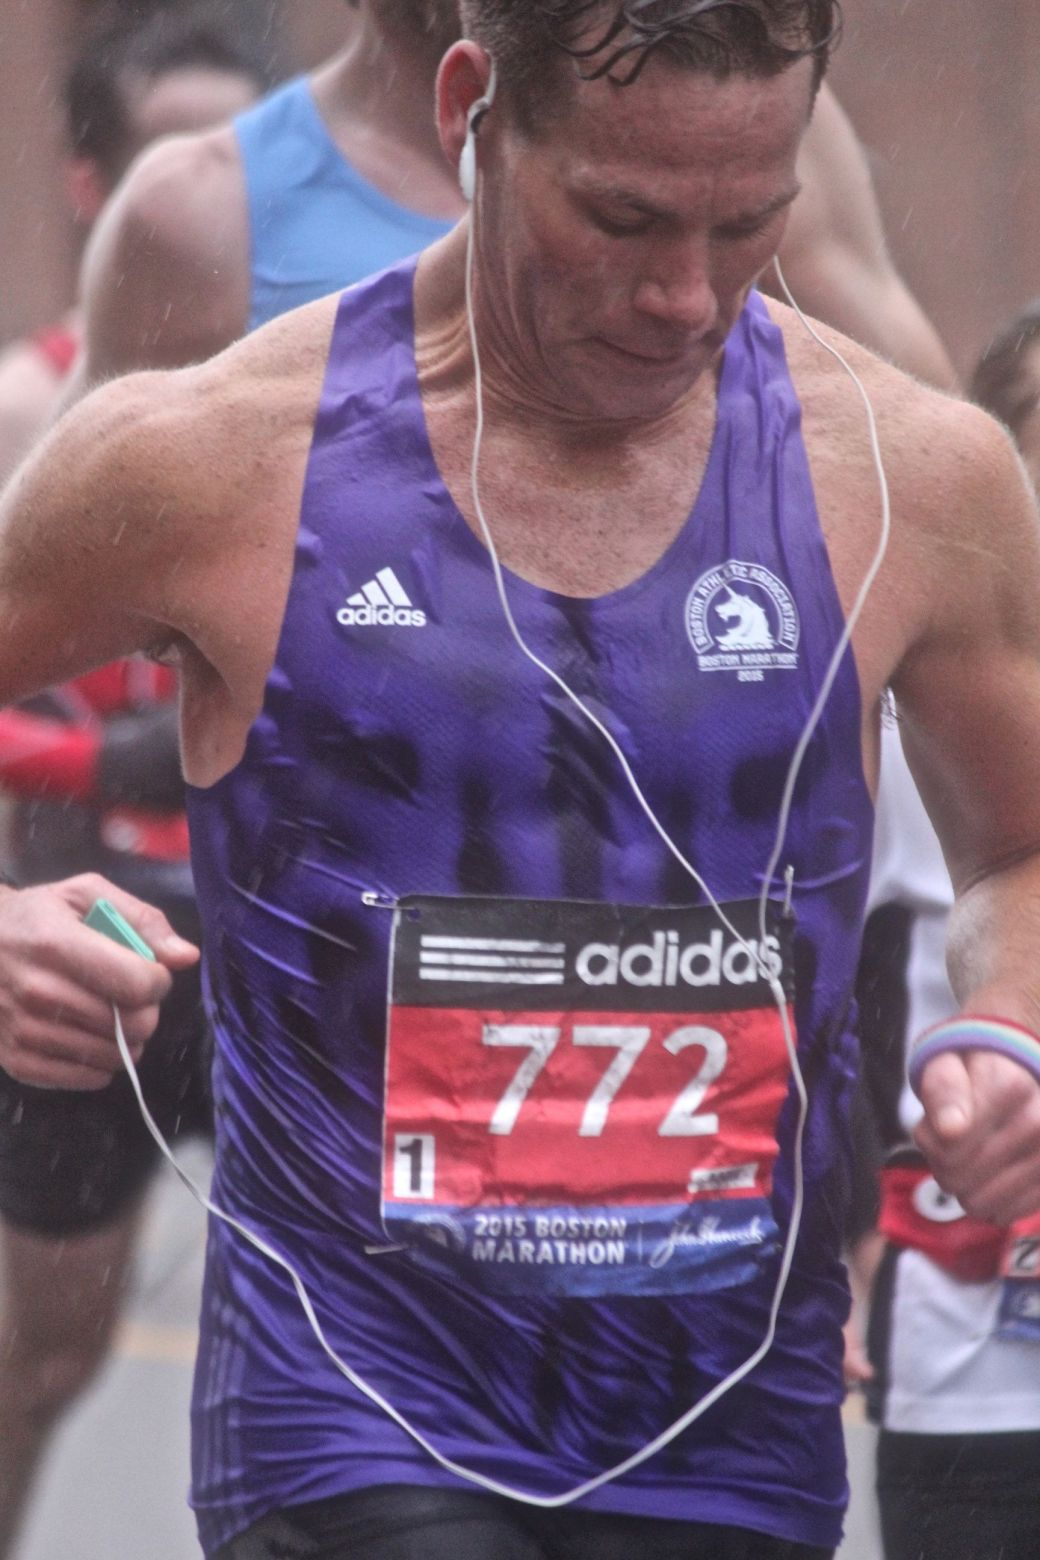 boston marathon april 20 2015 racer number 772